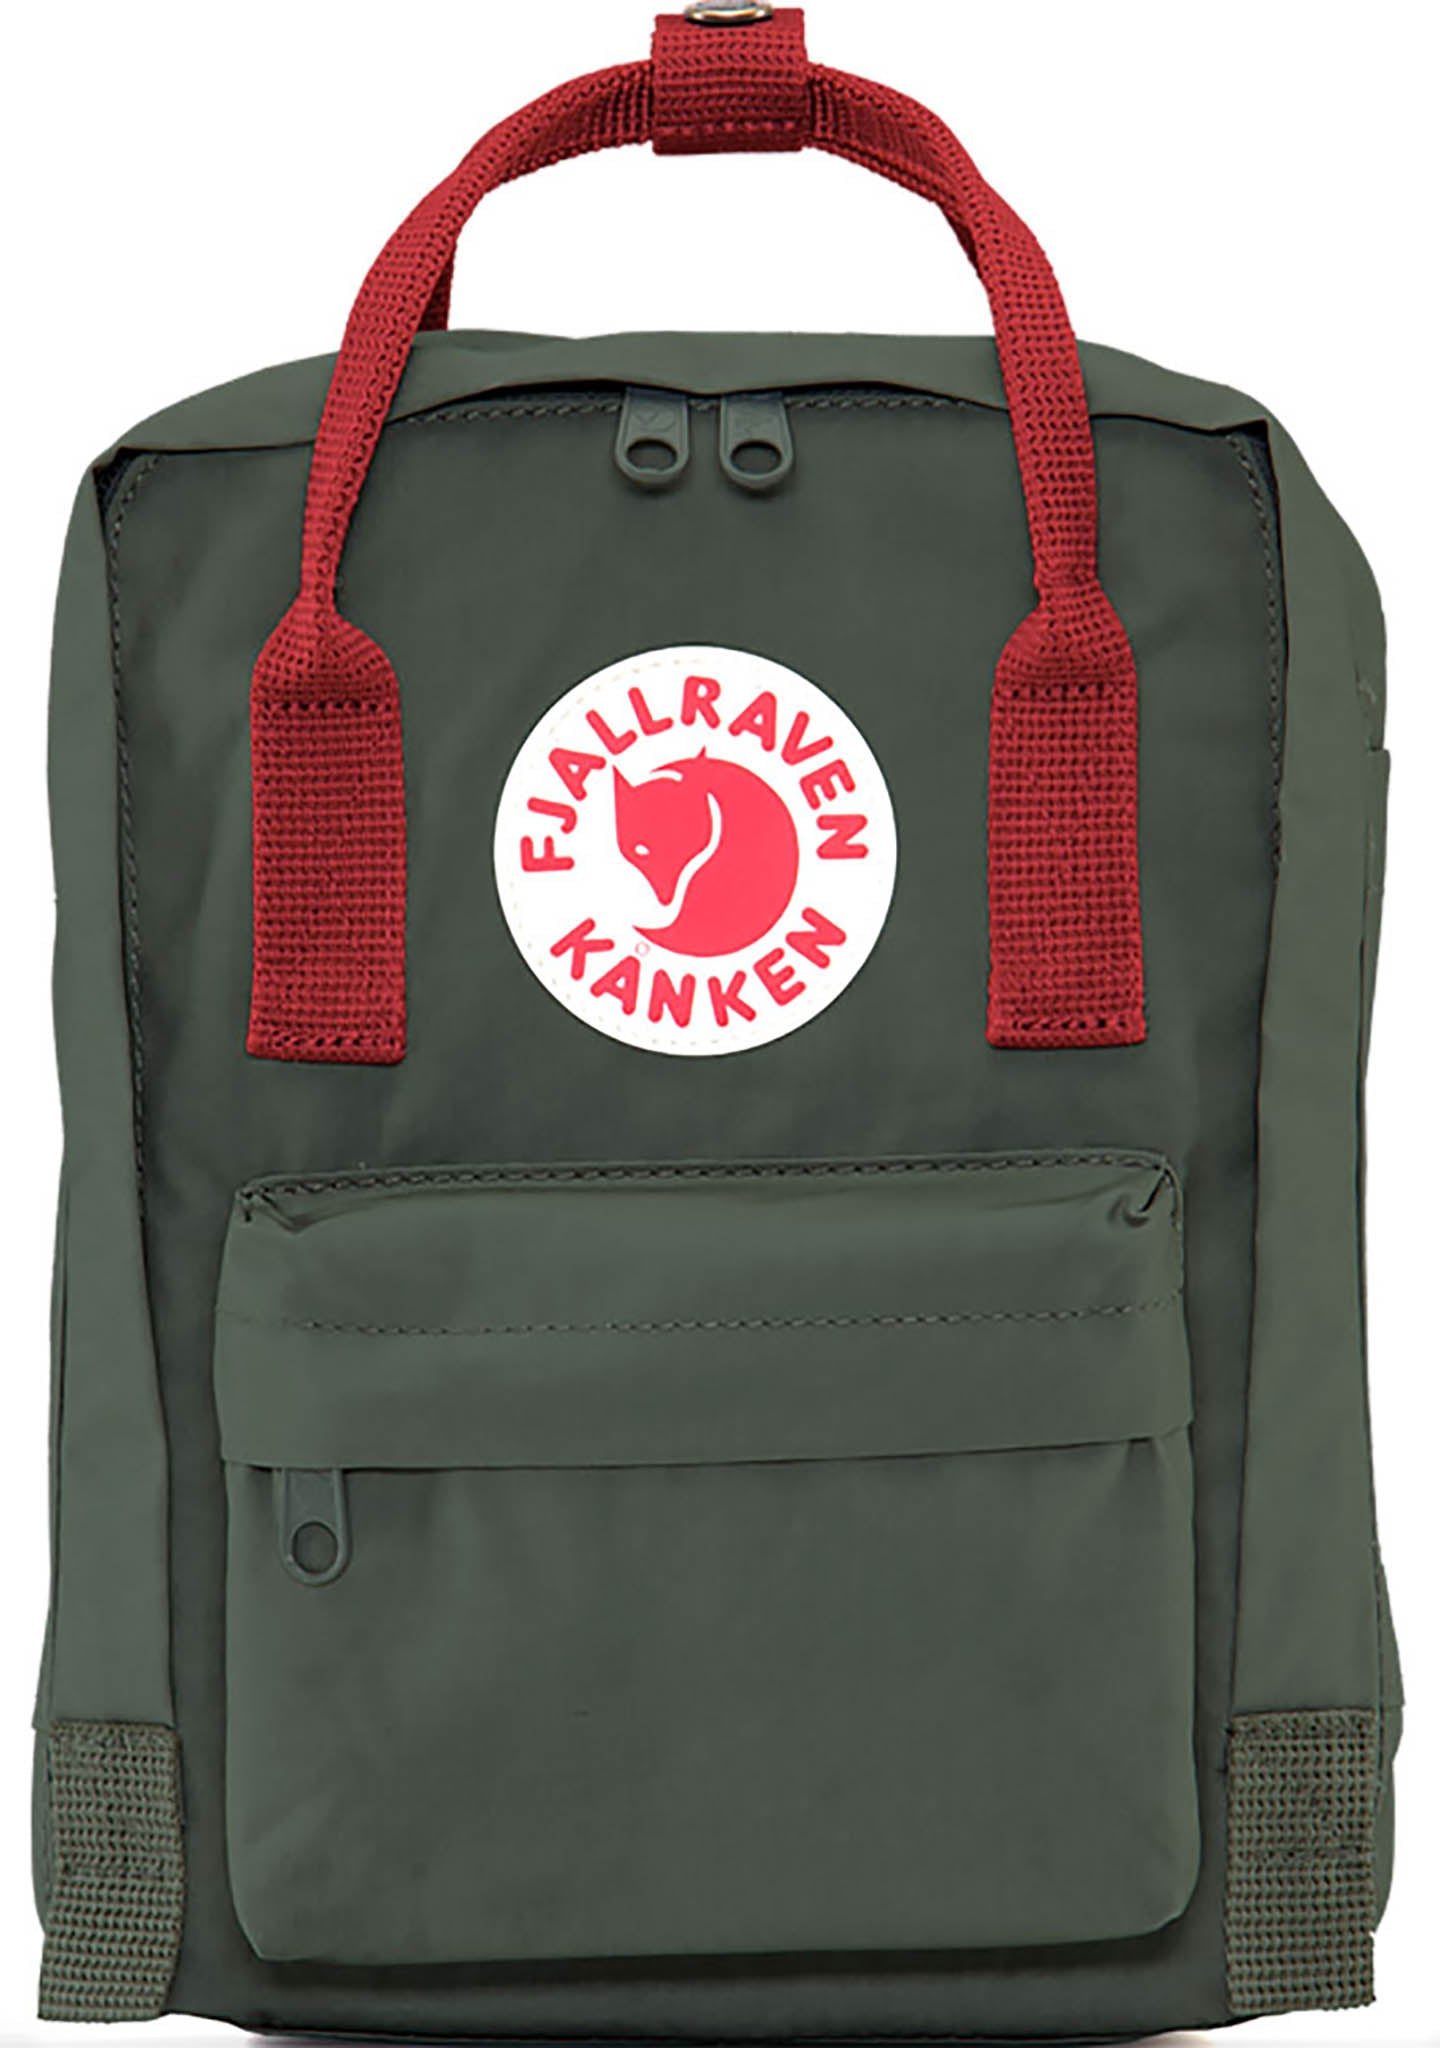 Fjallraven Kanken Mini Backpack in Forest Green/Ox Red